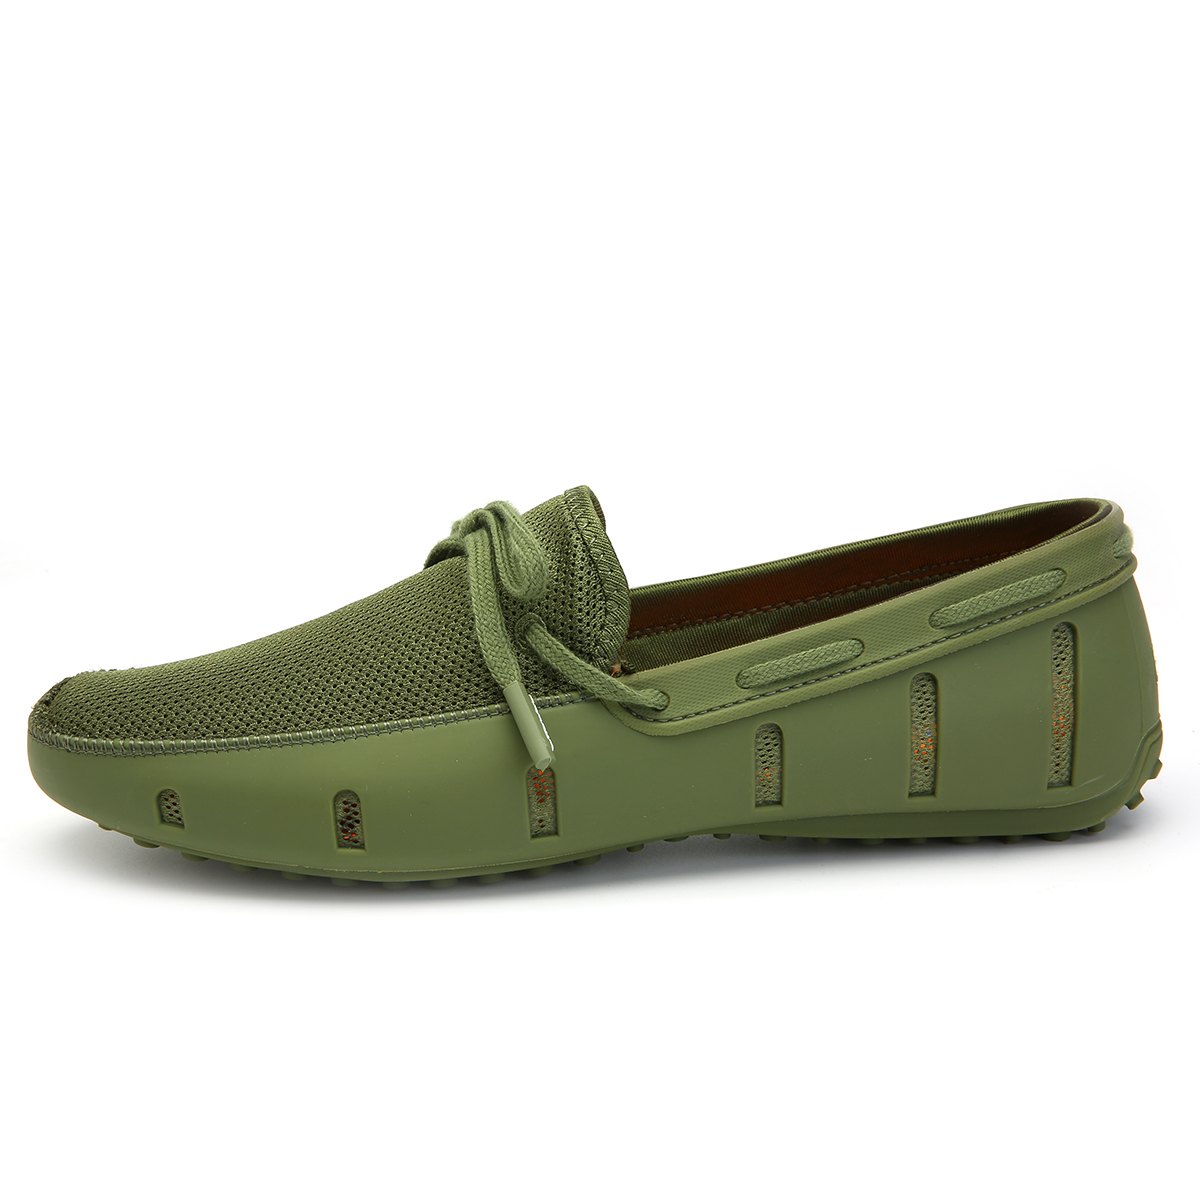 US-Adadila-Men-039-s-Summer-Driving-Loafers-Casual-Shoes-Slip-on-Leisure-Flats-Mesh thumbnail 14